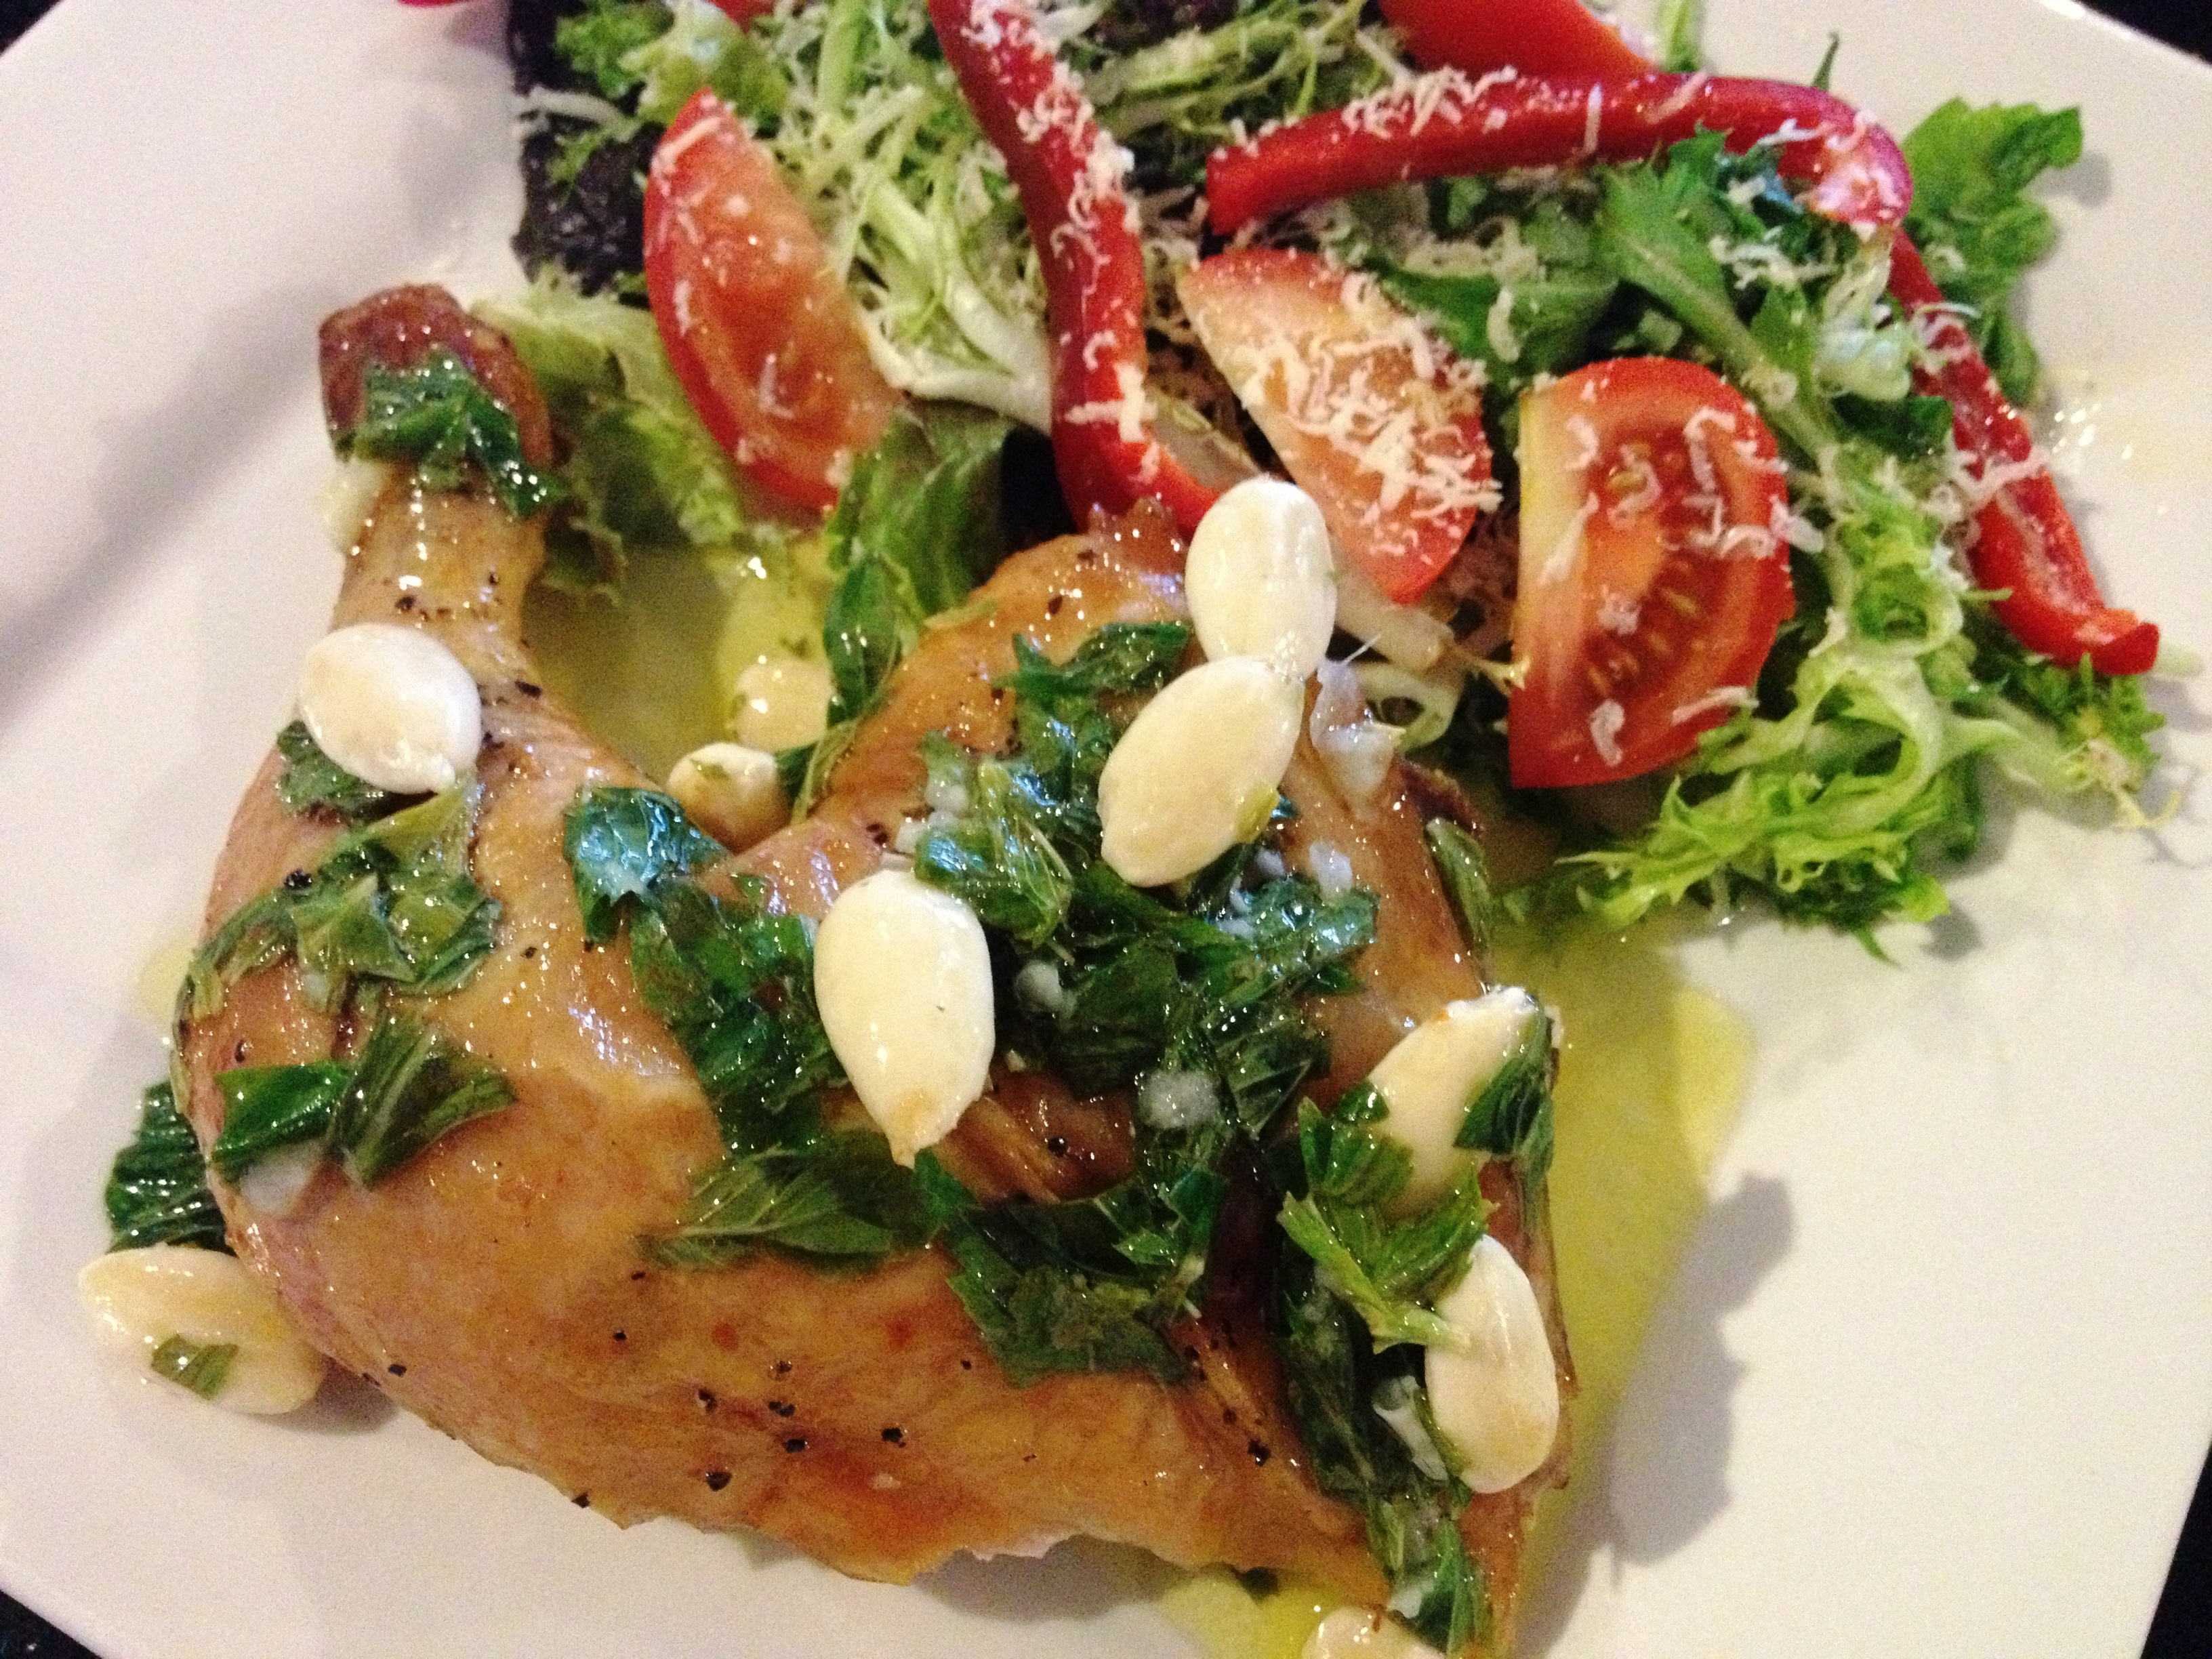 Roast chicken with salad and almond mint dressing